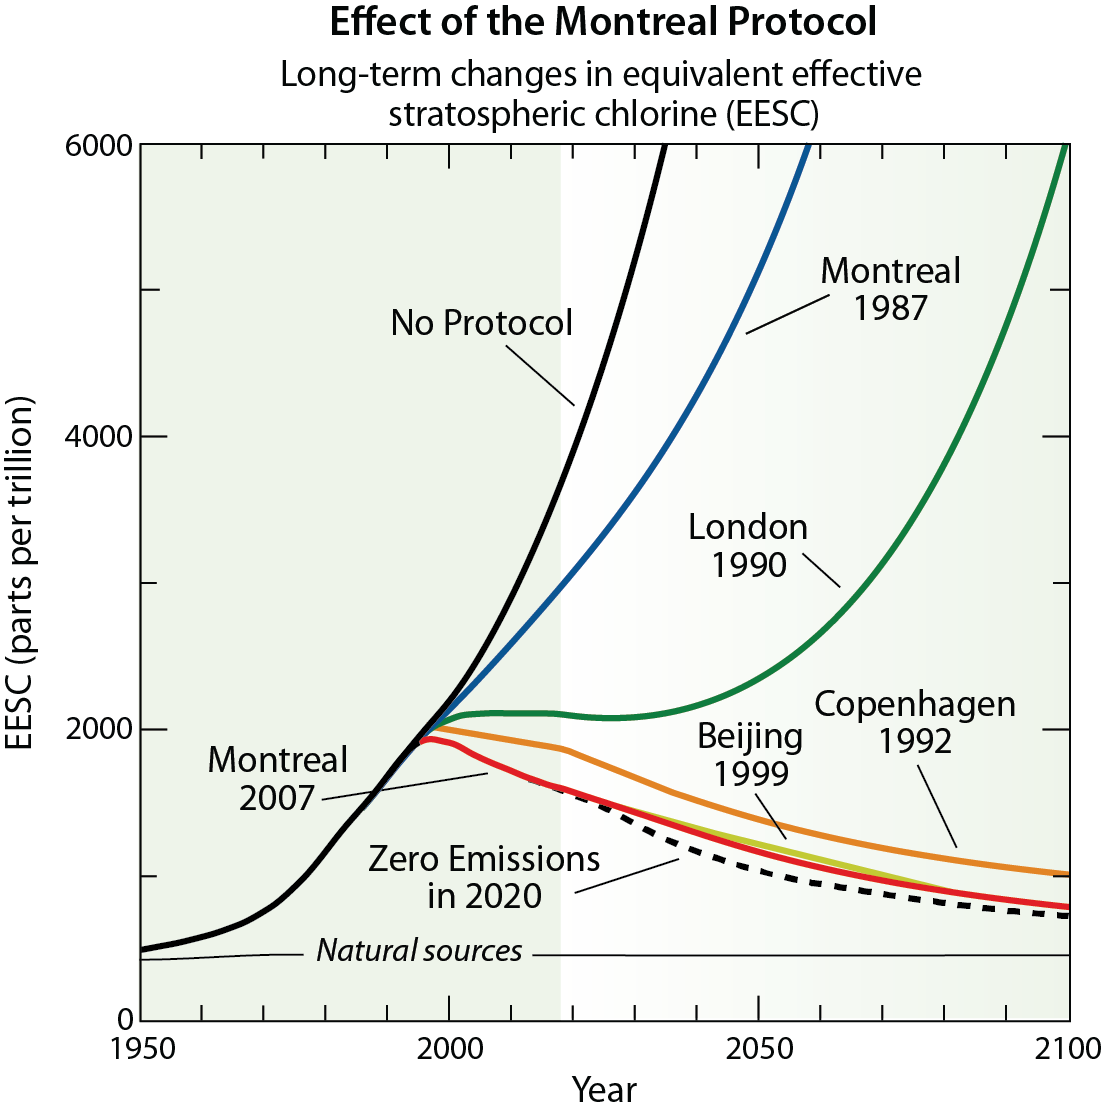 EEffect of the Montreal Protocol